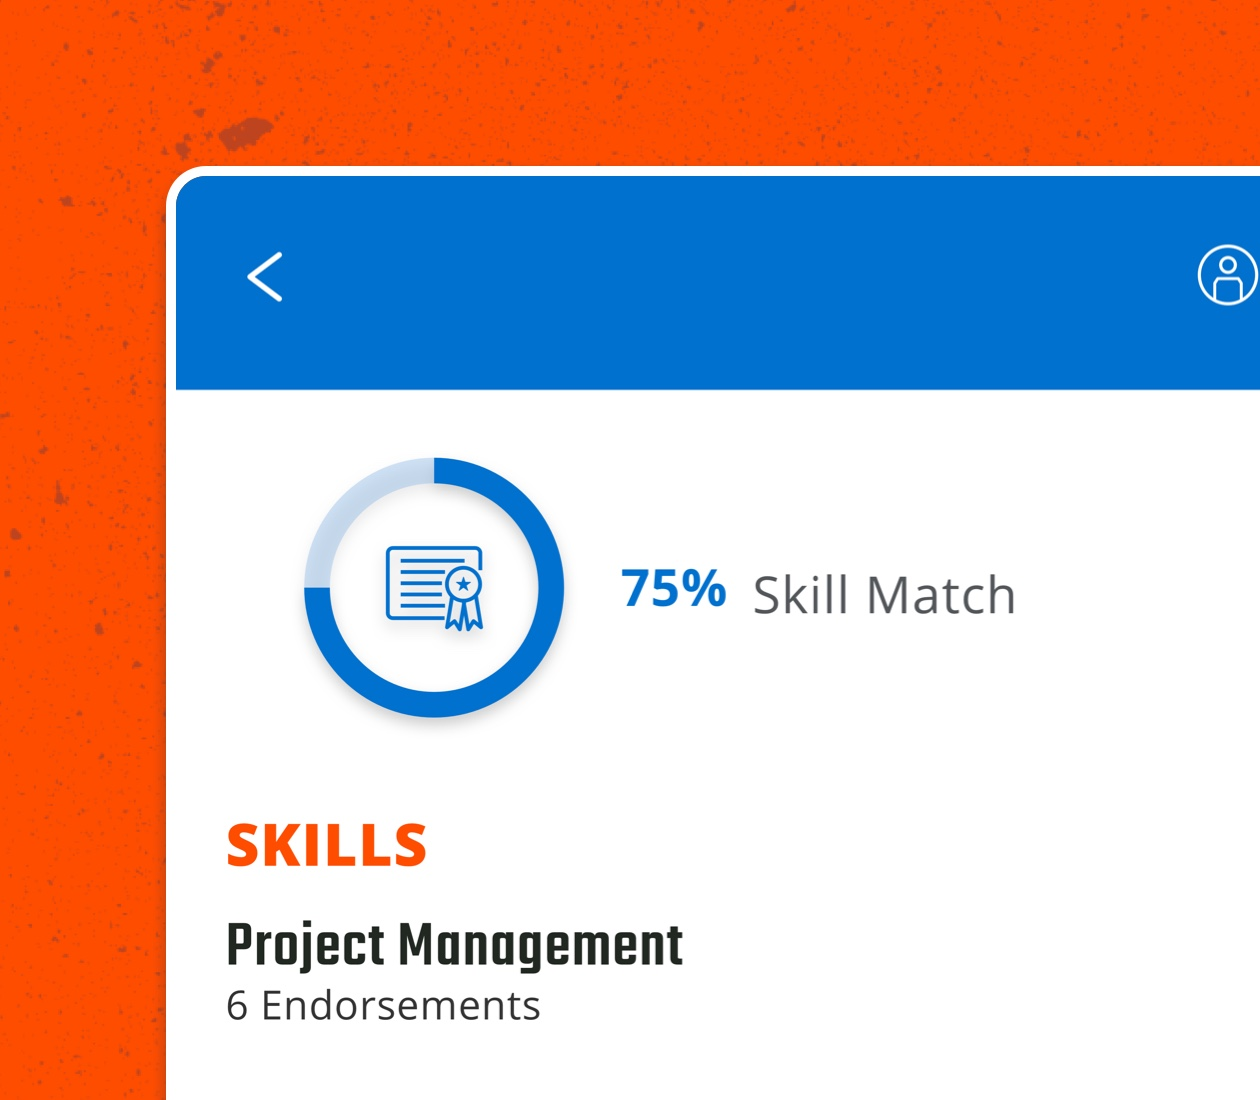 A card from the Tradeworthy Jobs app that visualizes how much a skill match a user is to a job.